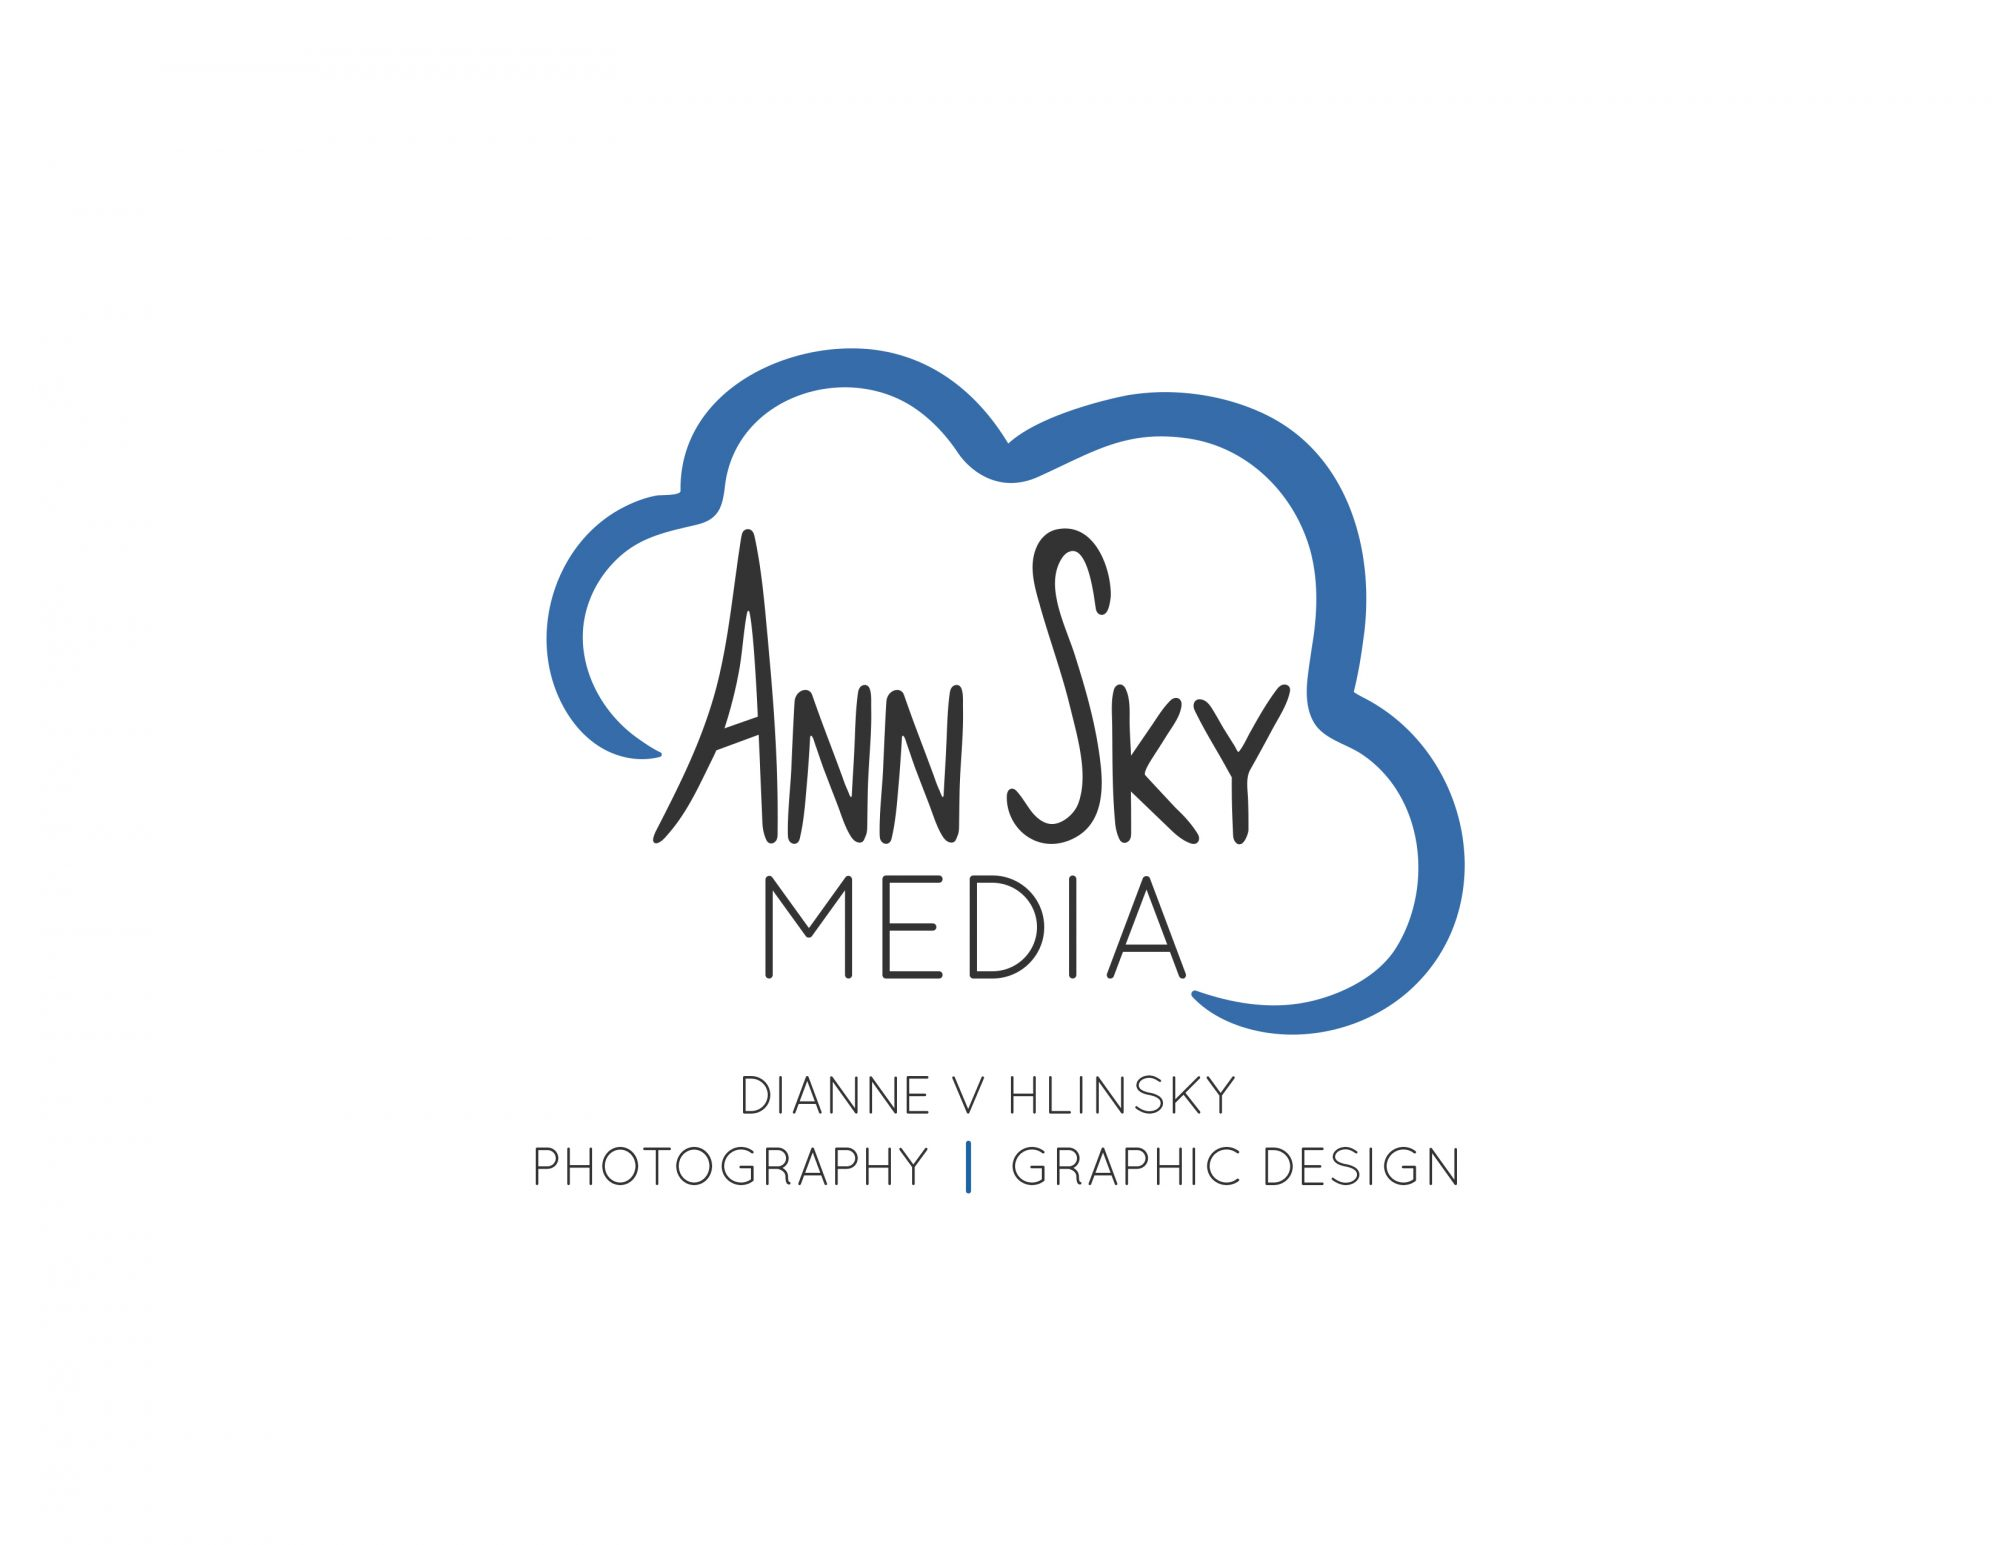 AnnSky Media is being redesigned